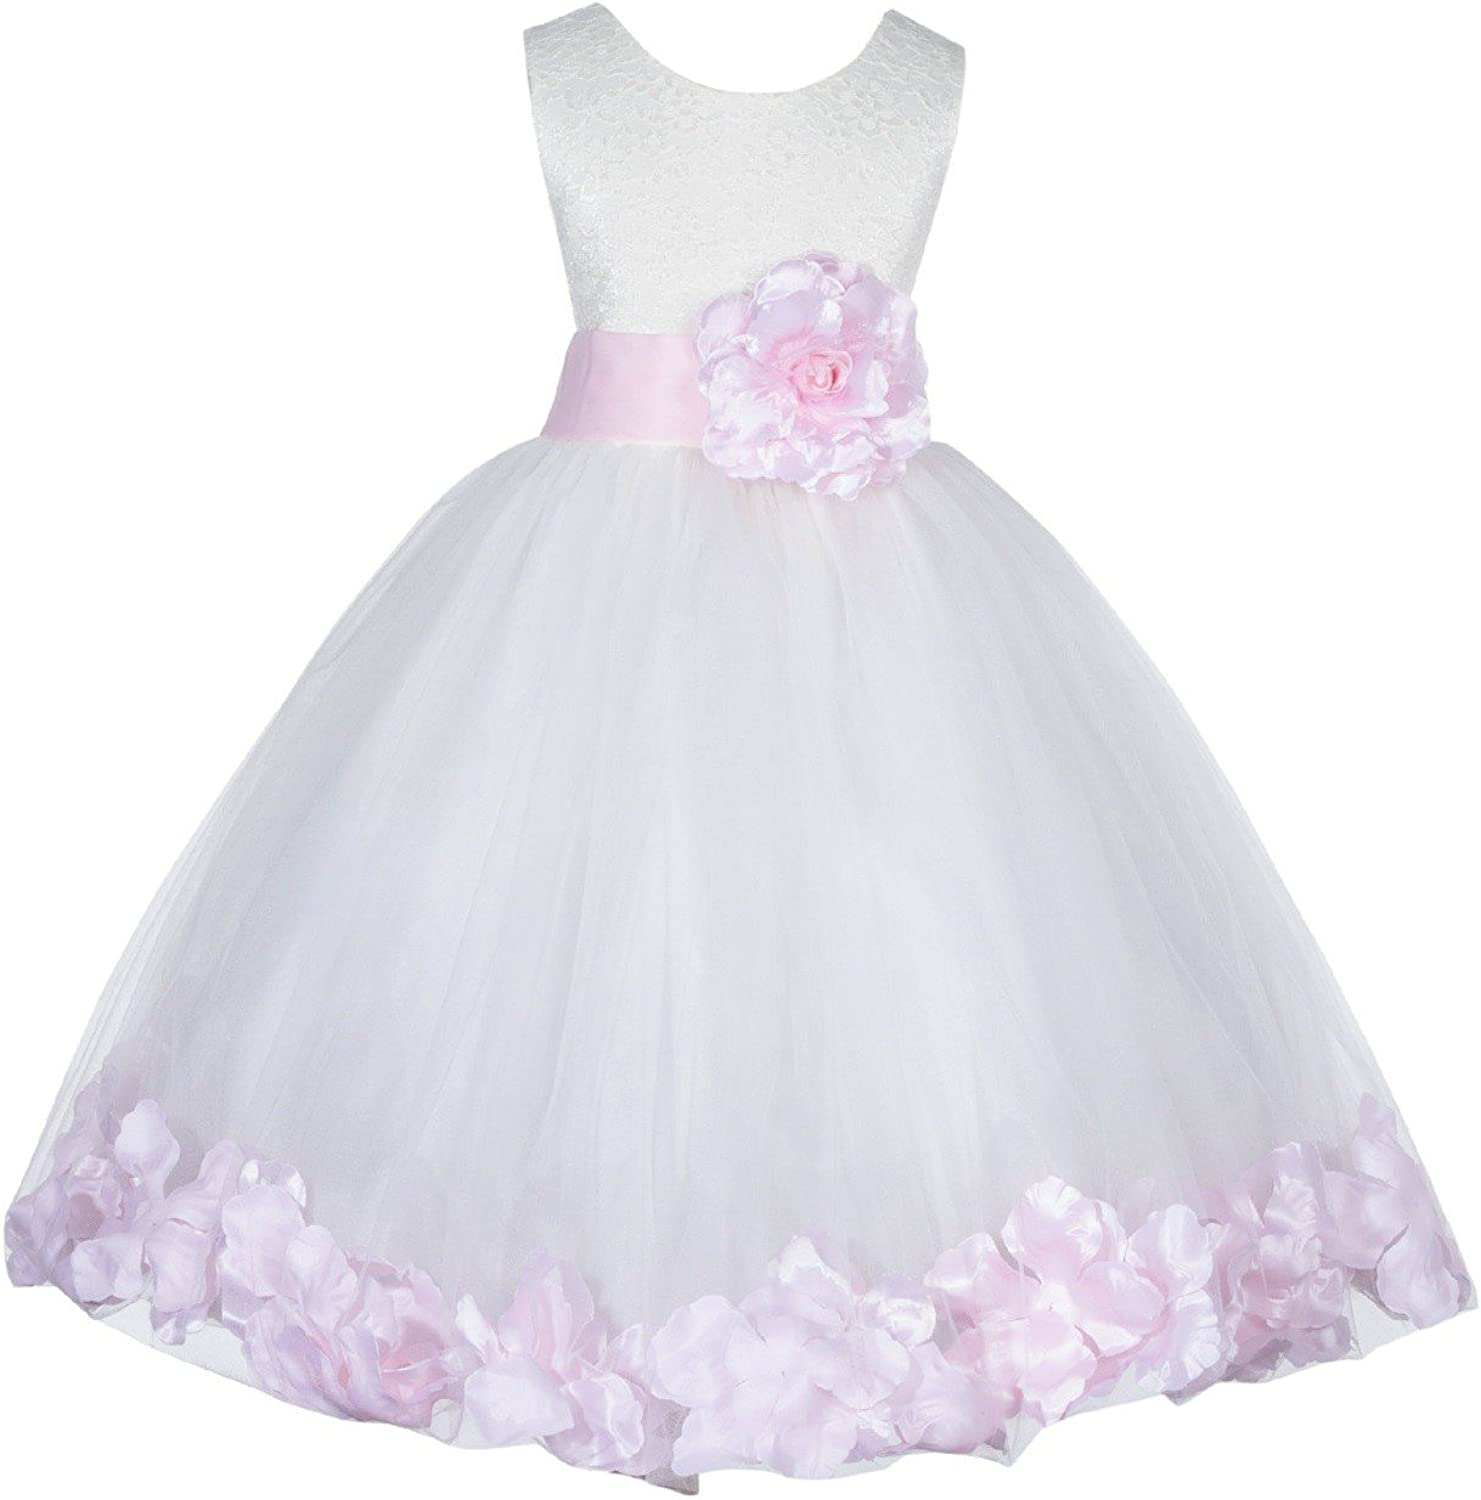 Ivory Lace Top Sale Tulle Floral Girl Petals Flower Christening Time sale Dress